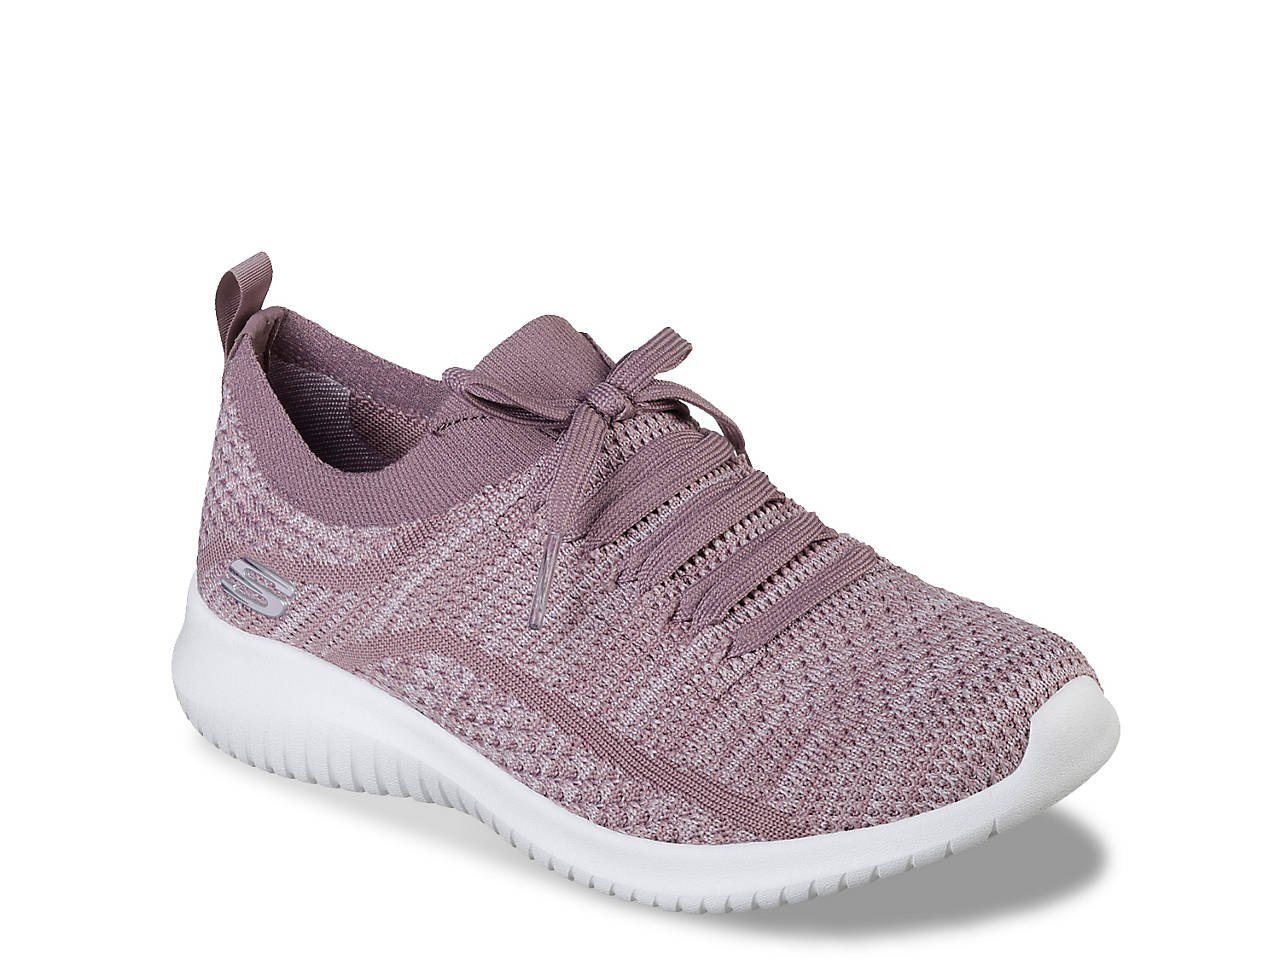 Skechers Ultra Flex Statements Sneaker - Women s Women s Shoes  6790e2e55